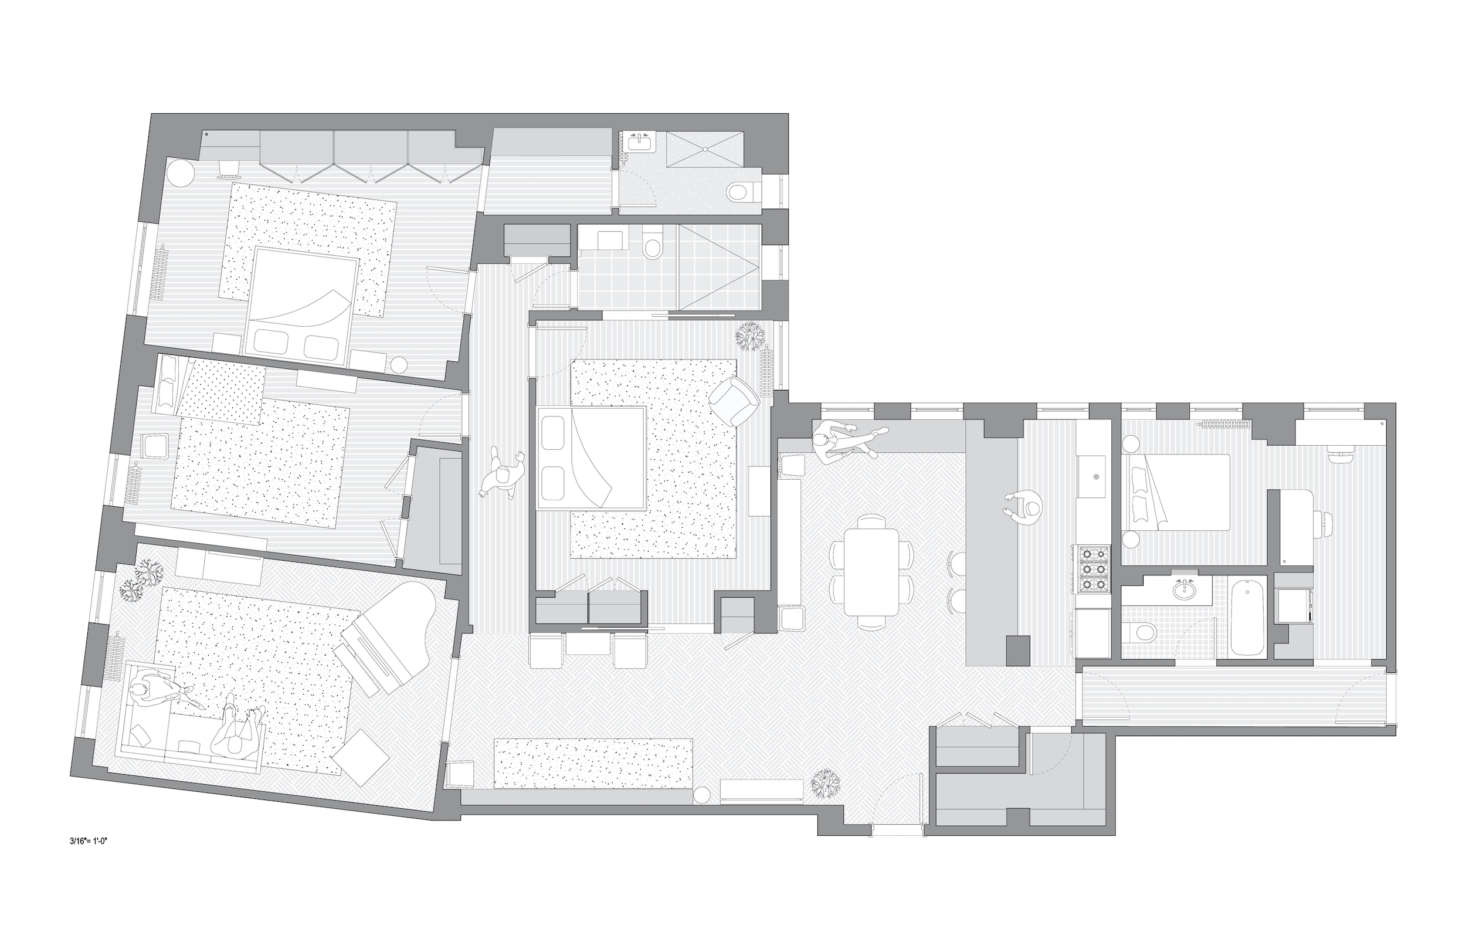 The new, more modern layout, now with a centrally located kitchen and guest quarters in lieu of staff rooms.